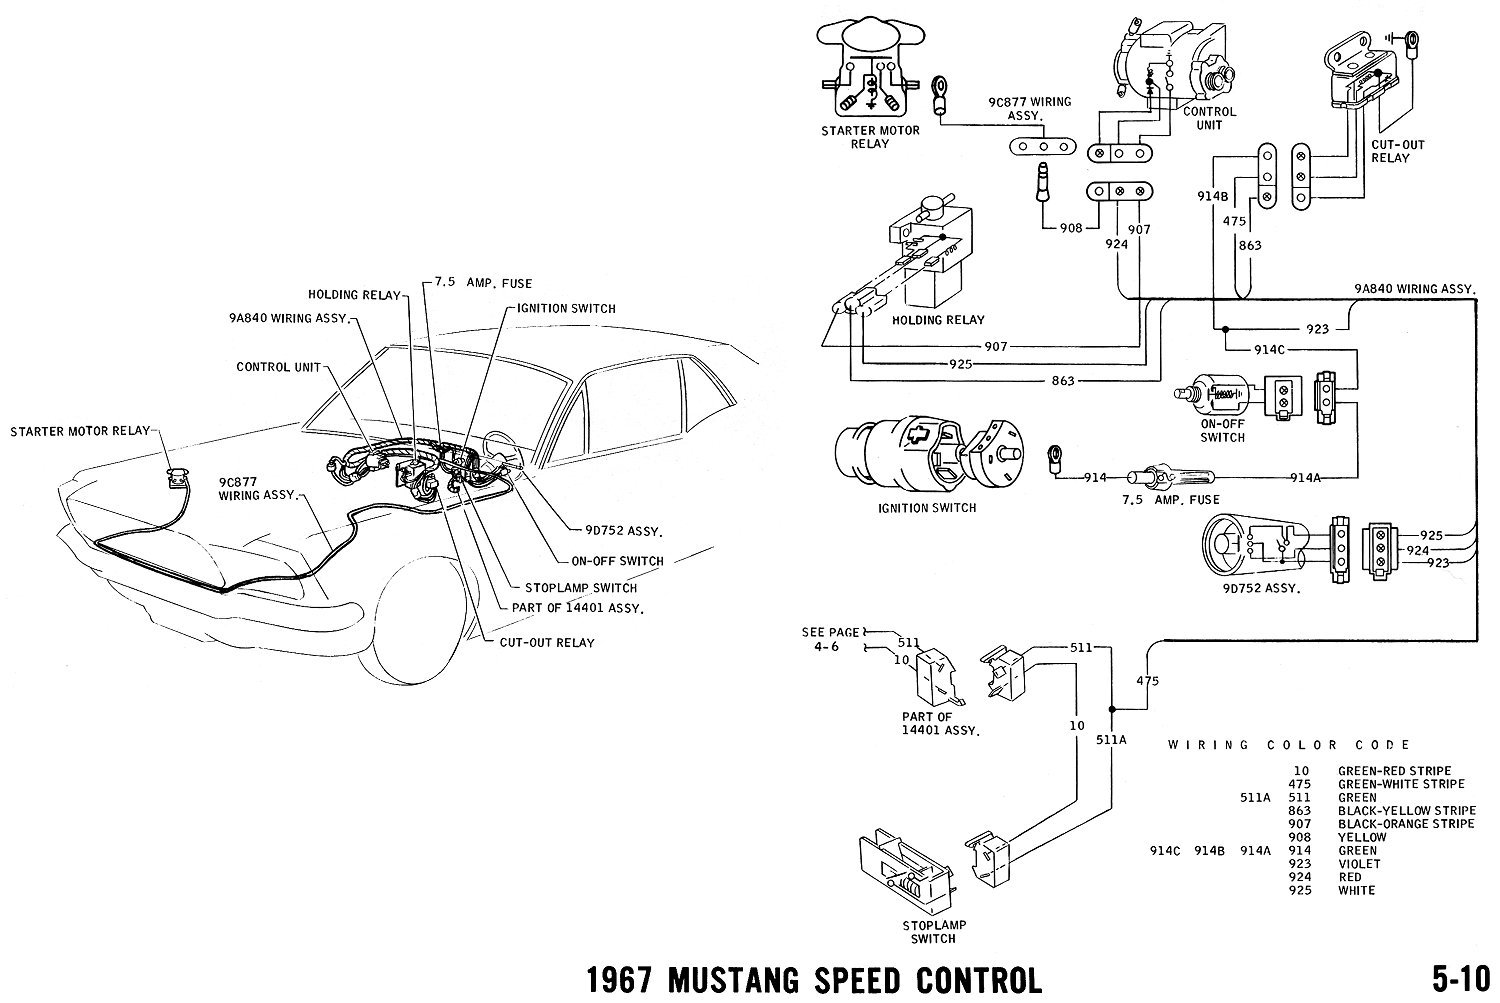 Ford Voltage Regulator Wiring Diagram on 1965 ford voltage regulator wiring diagram, 1971 ford voltage regulator wiring diagram, 1949 ford voltage regulator wiring diagram,